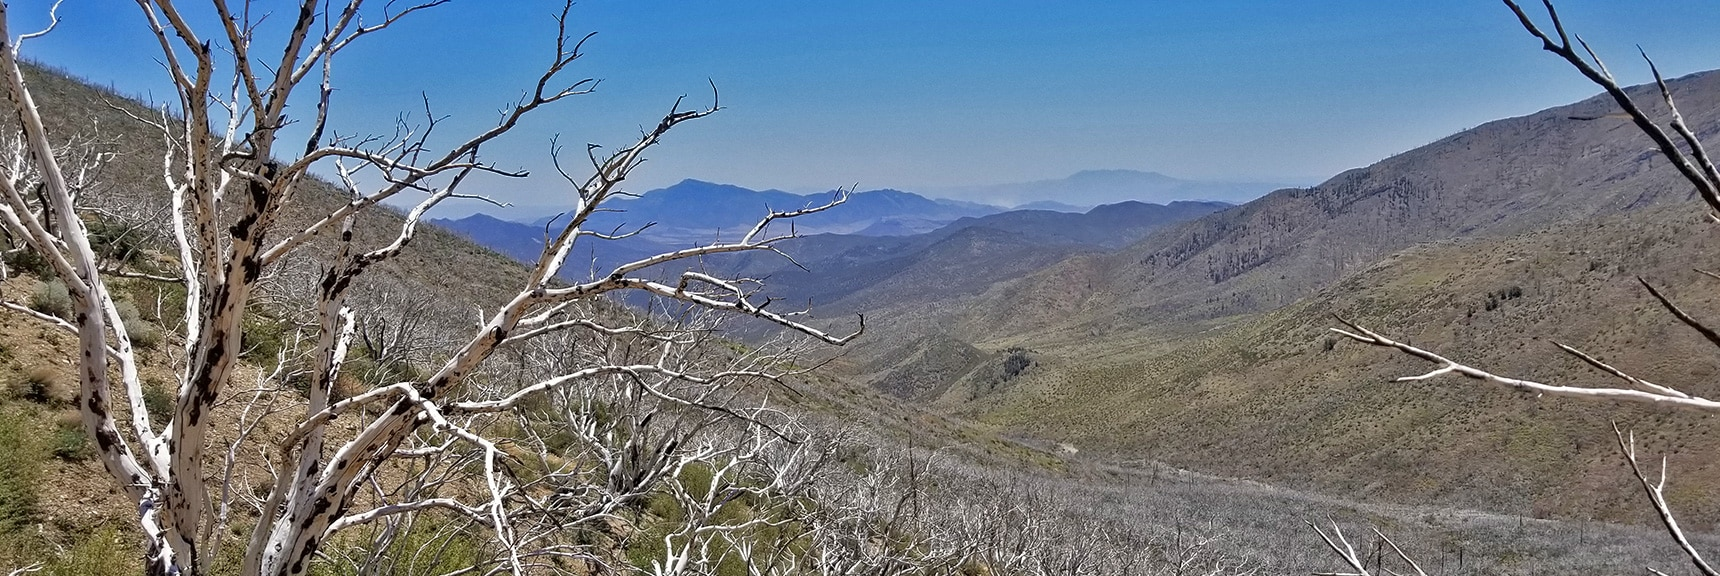 View Down Lovell Canyon to Potosi Mt. from 8,300ft East Side of Lovell Canyon | Harris Mountain from Lovell Canyon Nevada